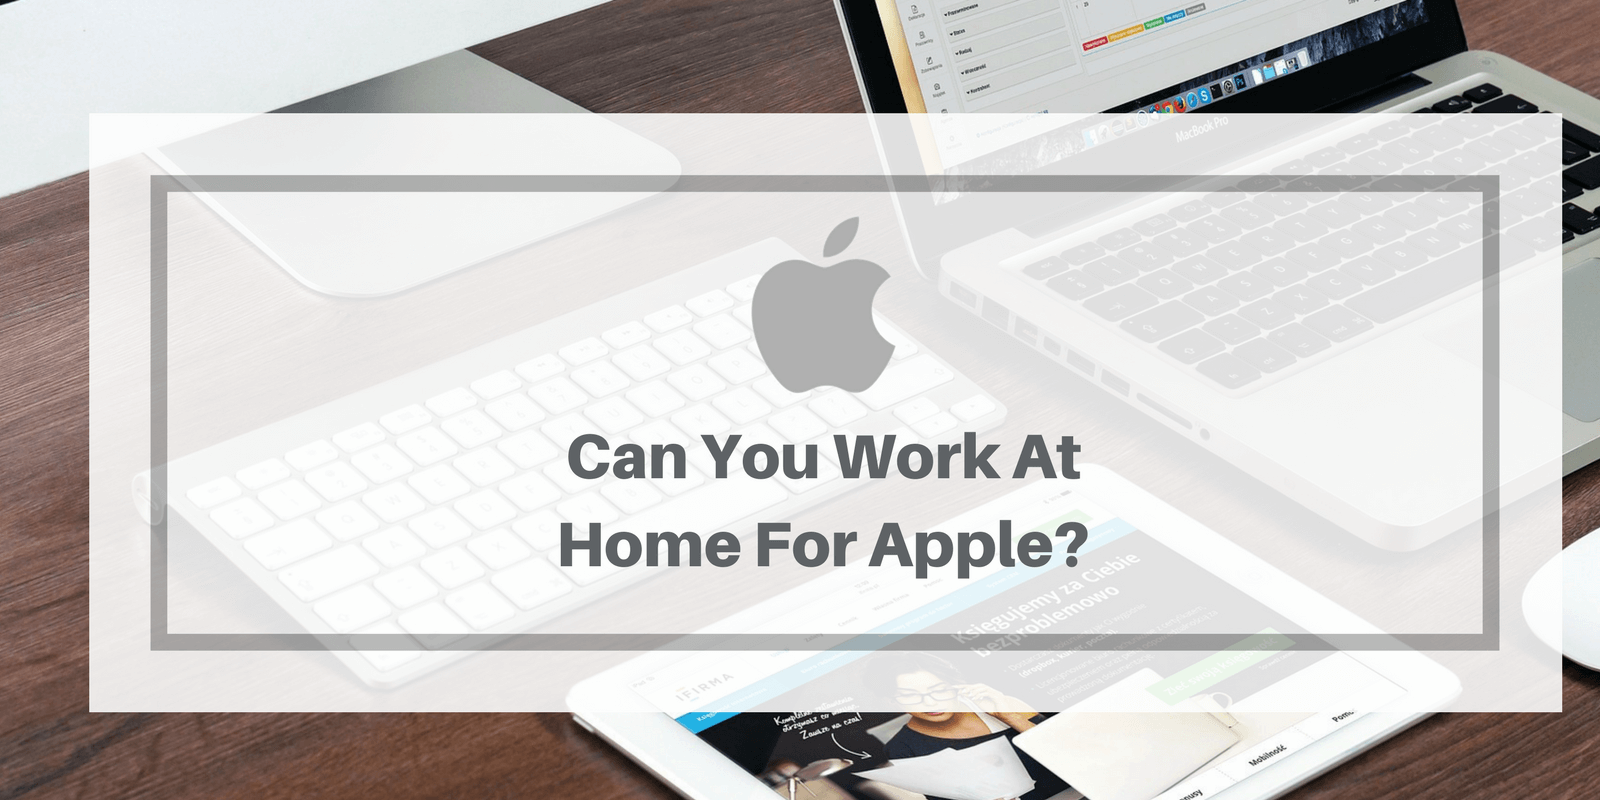 Apple At Home Advisor Review: Is This A Real Work At Home Job Or Scam?